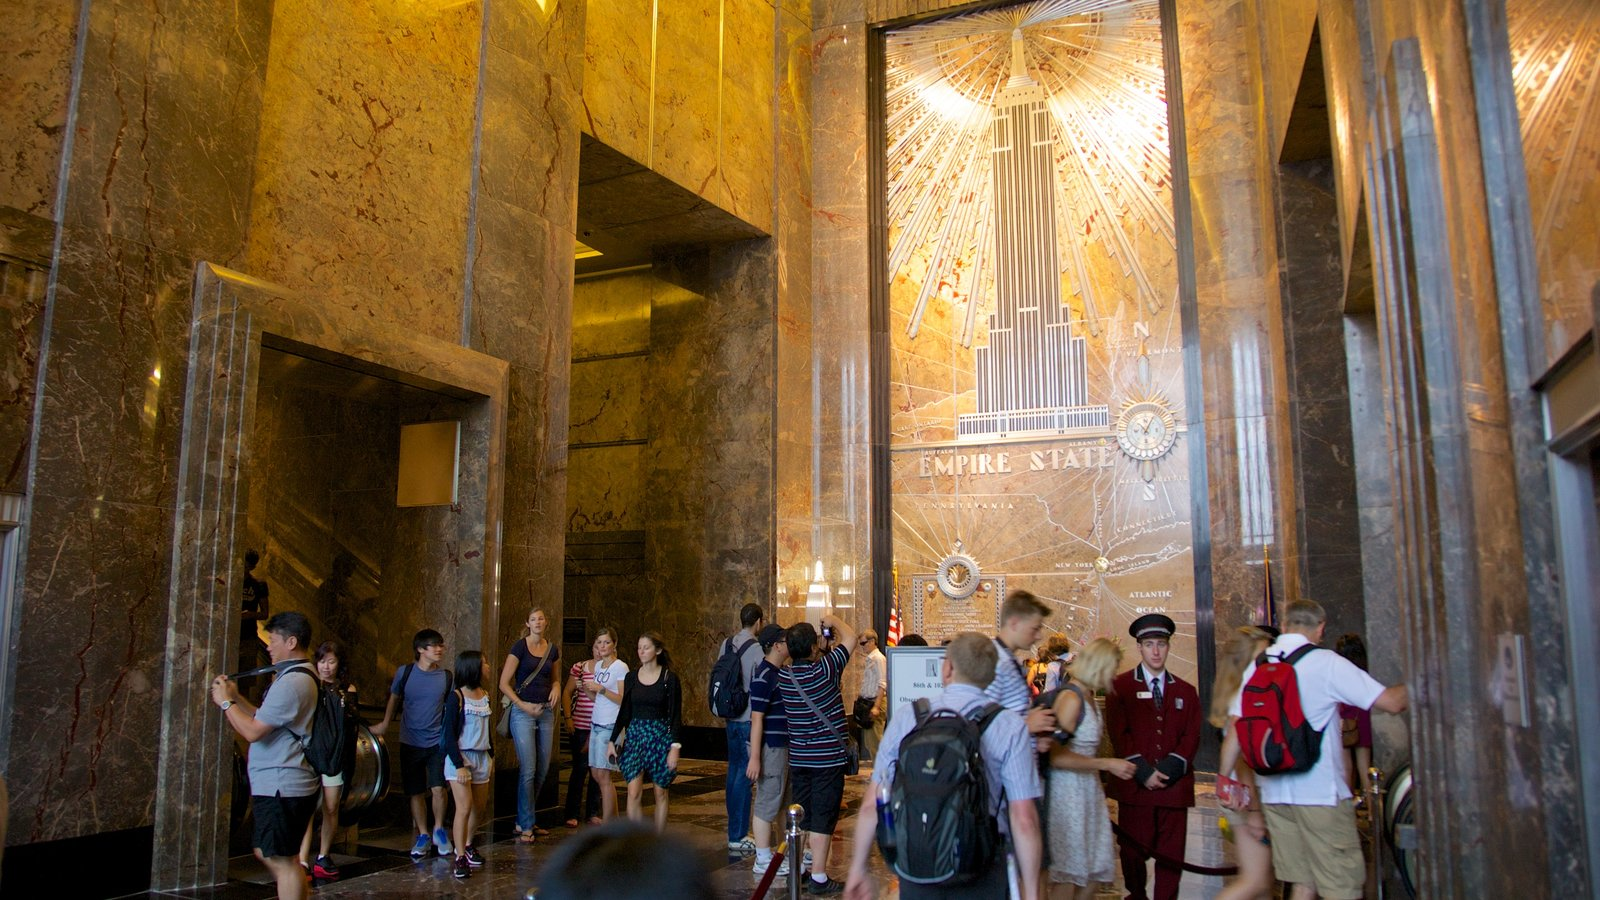 Empire State Building showing interior views as well as a large group of people